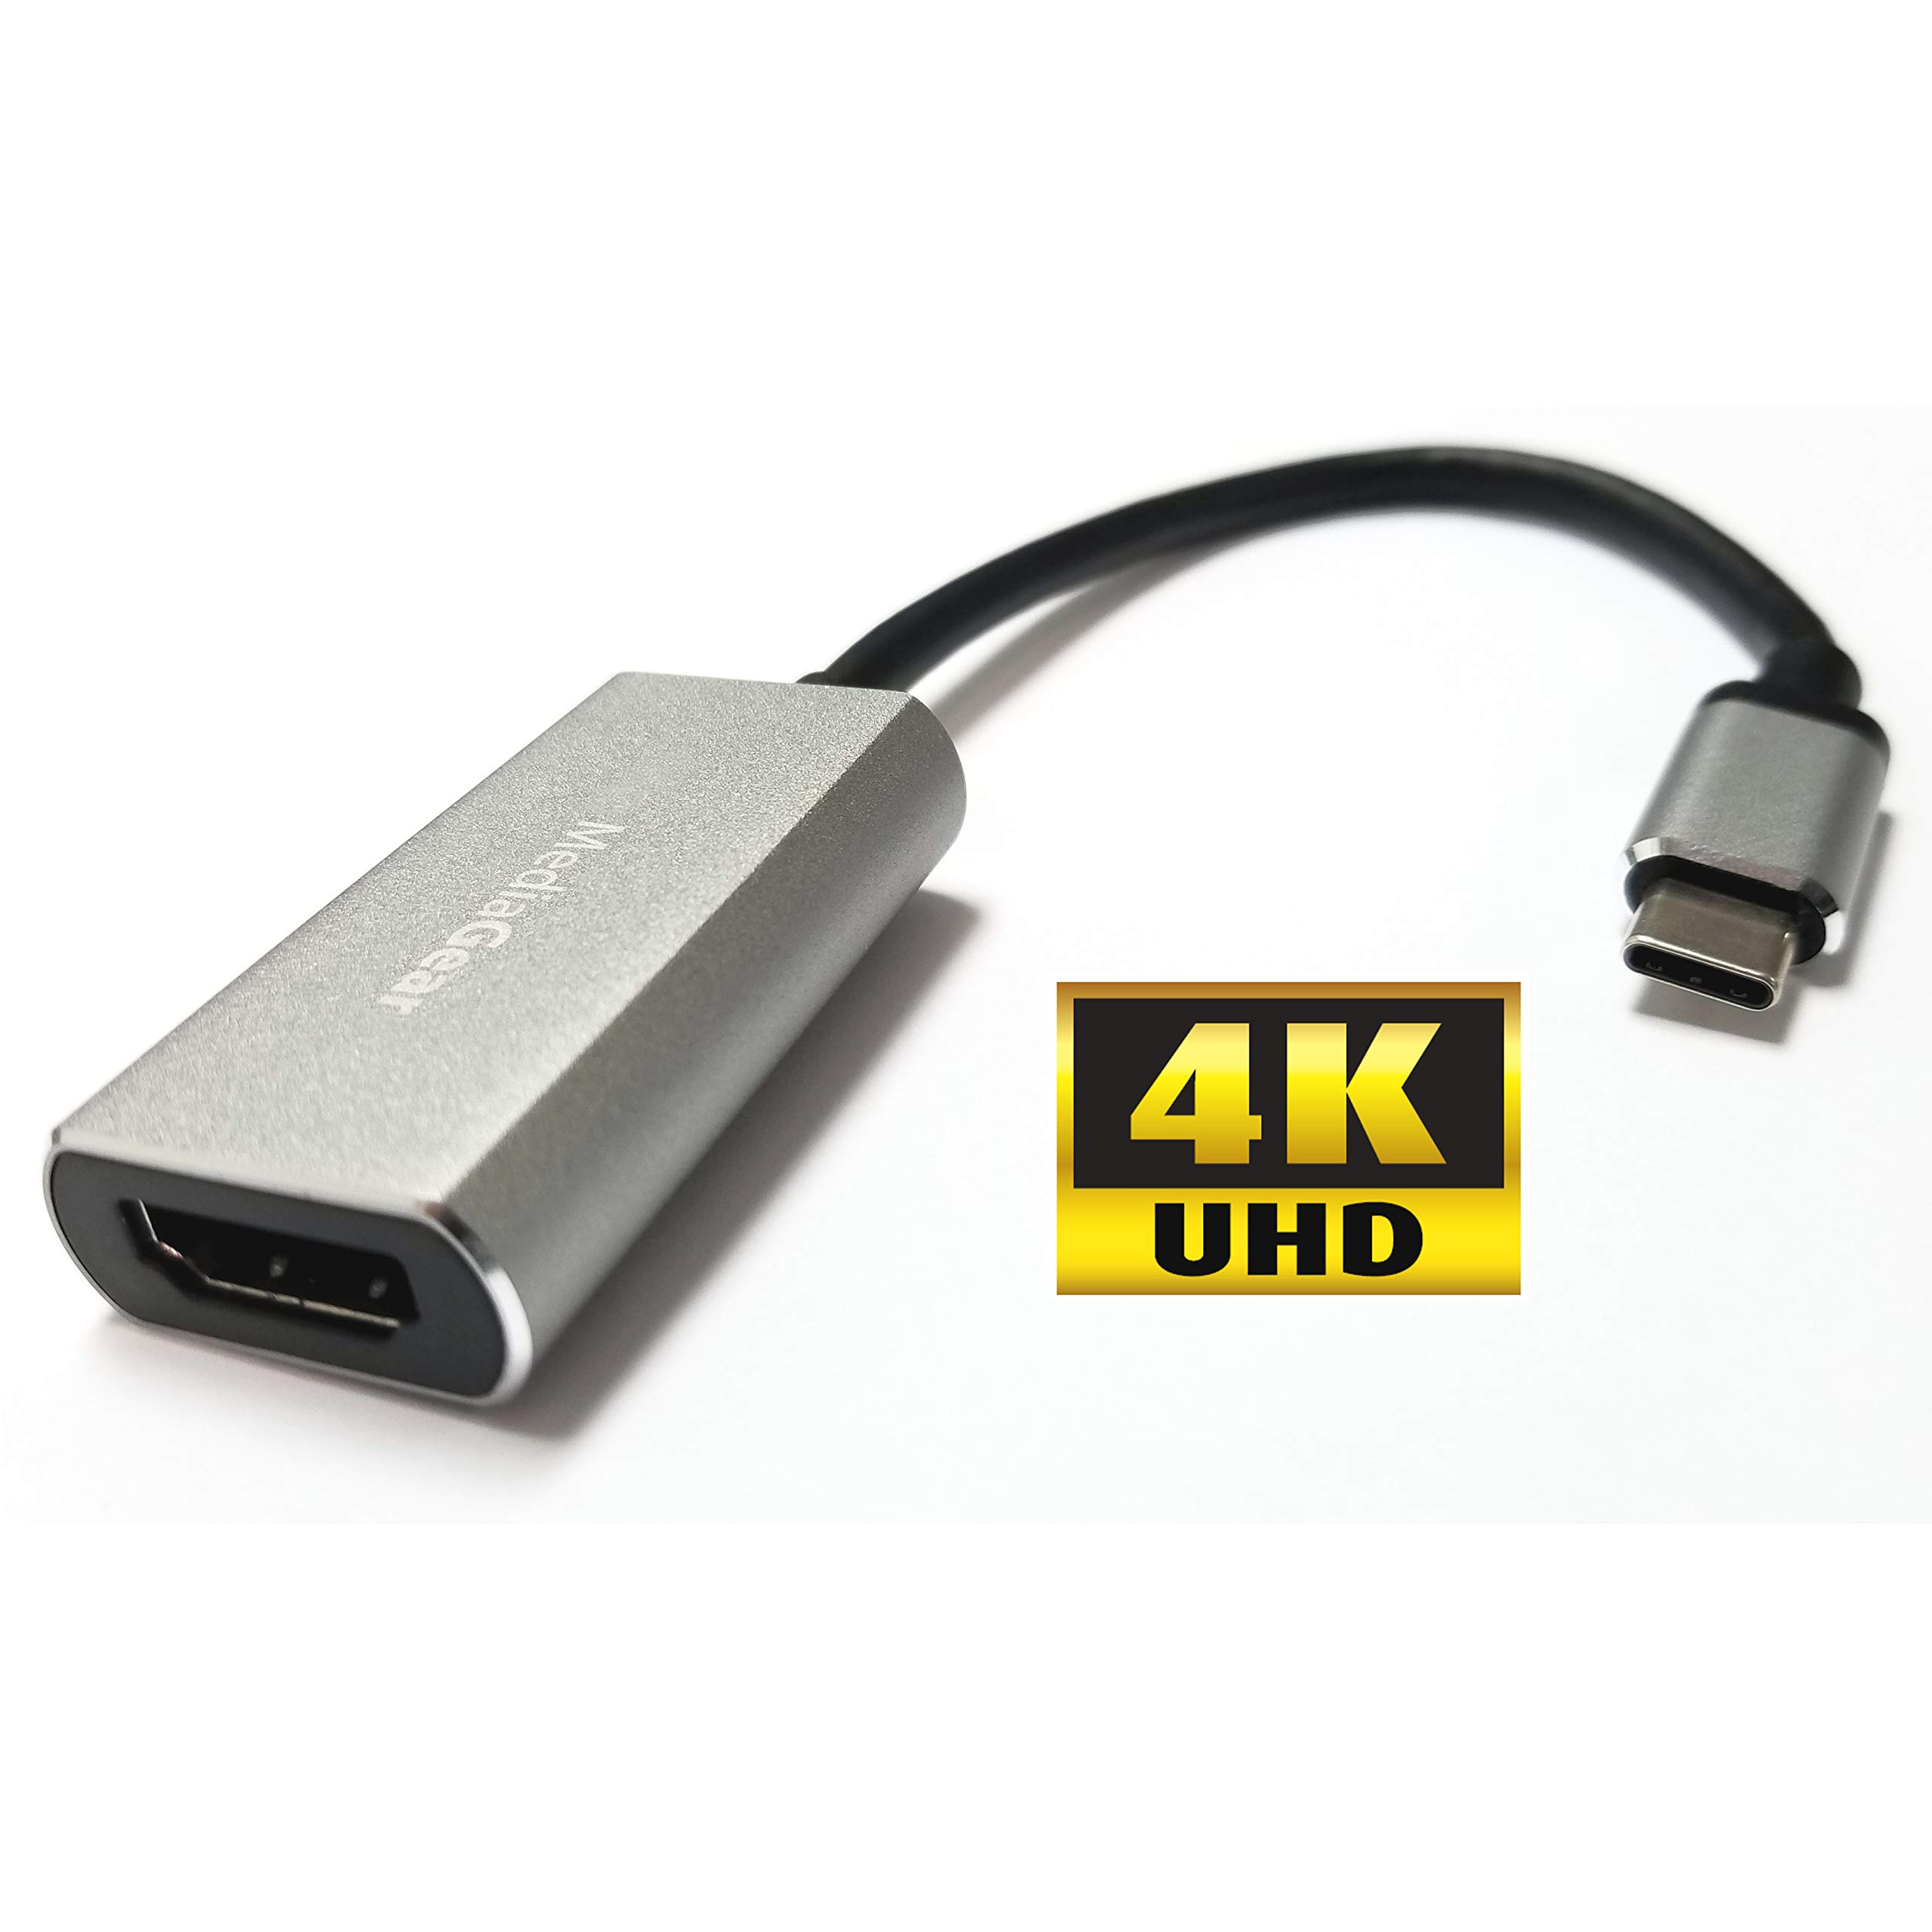 MediaGear USB C to HDMI Adapter - USB 3.1 C to HDMI 4k @ 30hz Cable for MacBook, Pro, SufaceBook 2, iMac, Dell XPS 13/15, PixelBook and HDMI Alt Mode Enabled Devices.